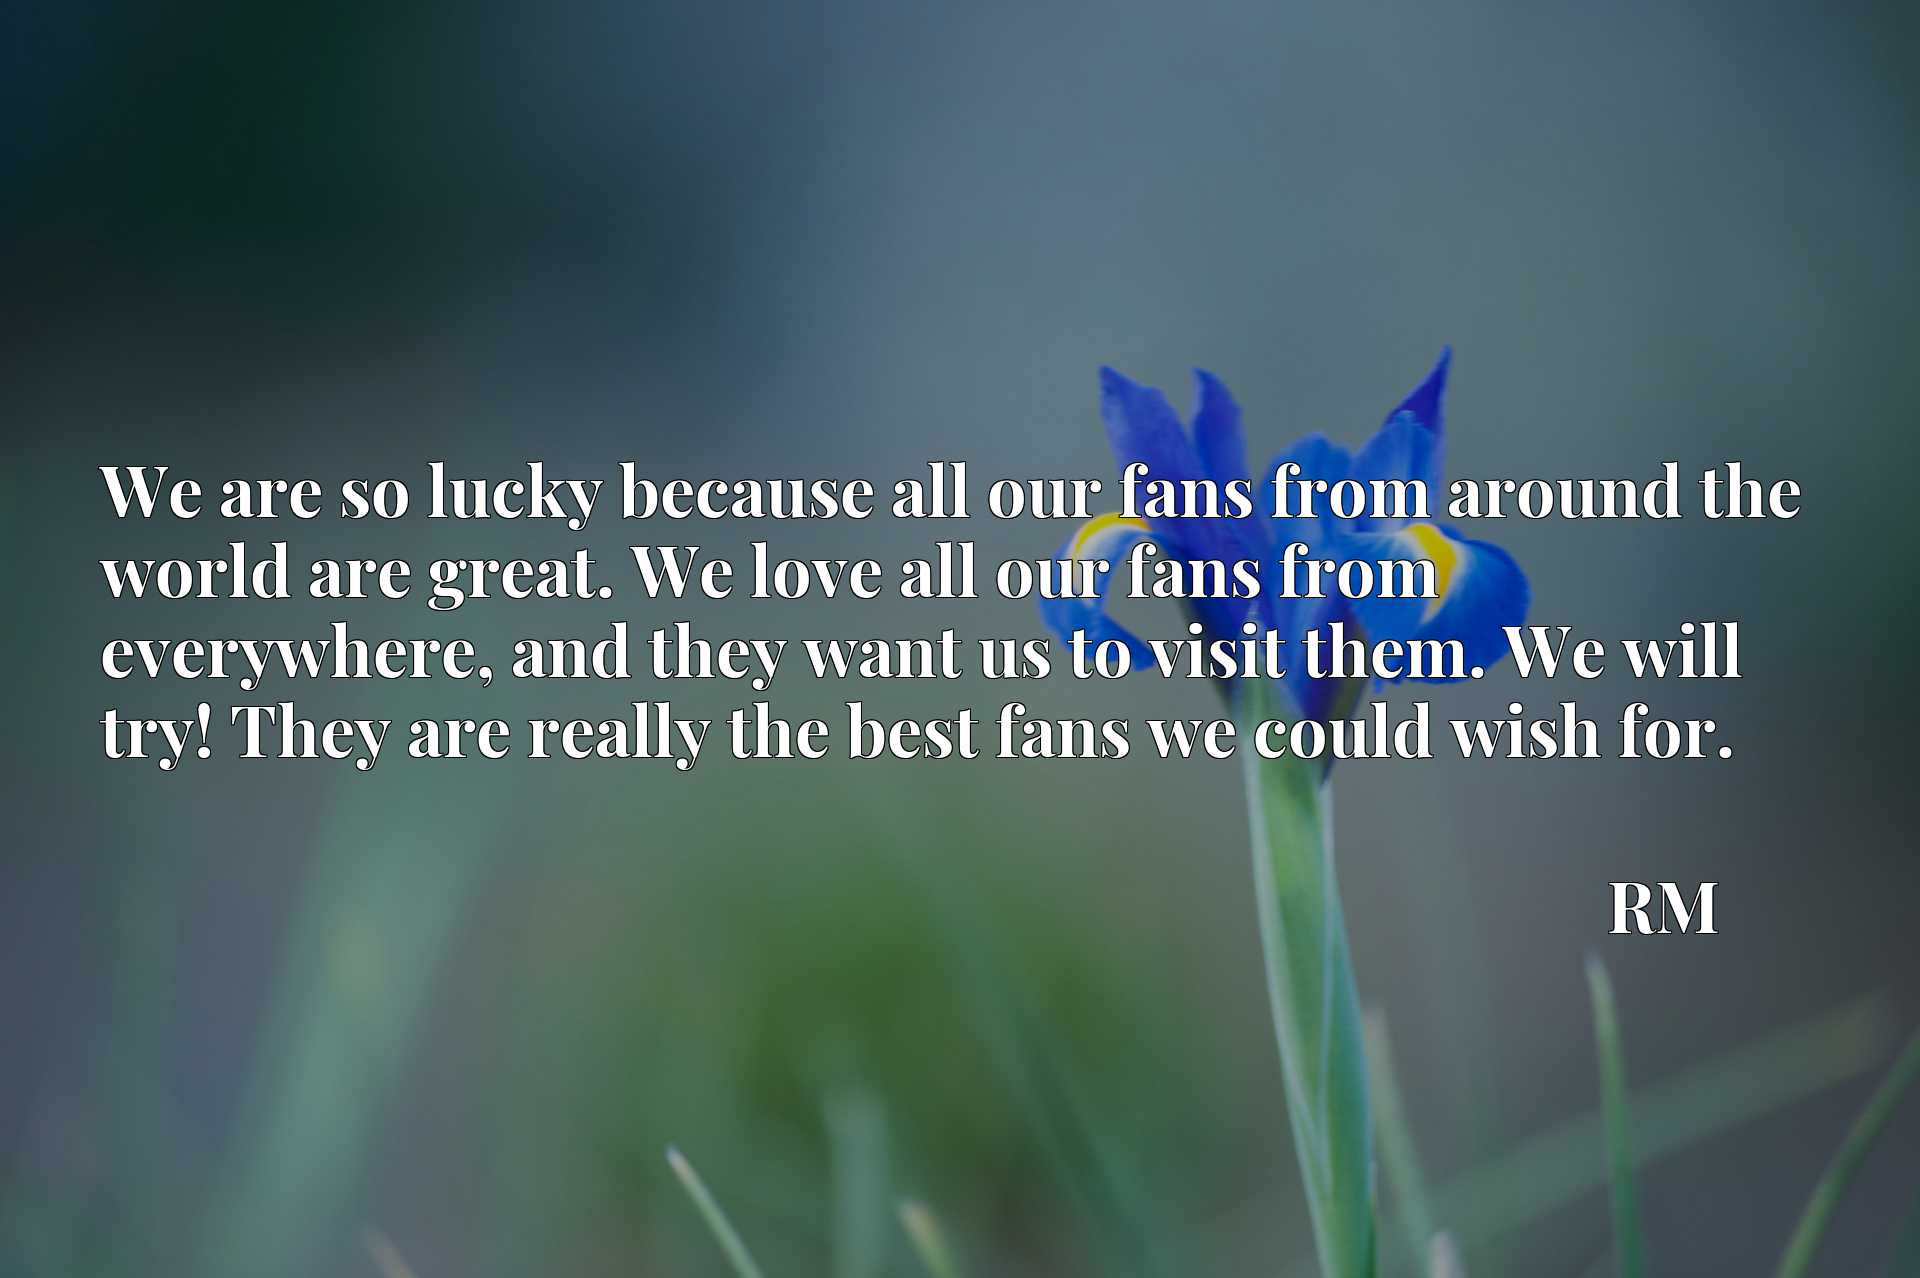 We are so lucky because all our fans from around the world are great. We love all our fans from everywhere, and they want us to visit them. We will try! They are really the best fans we could wish for.